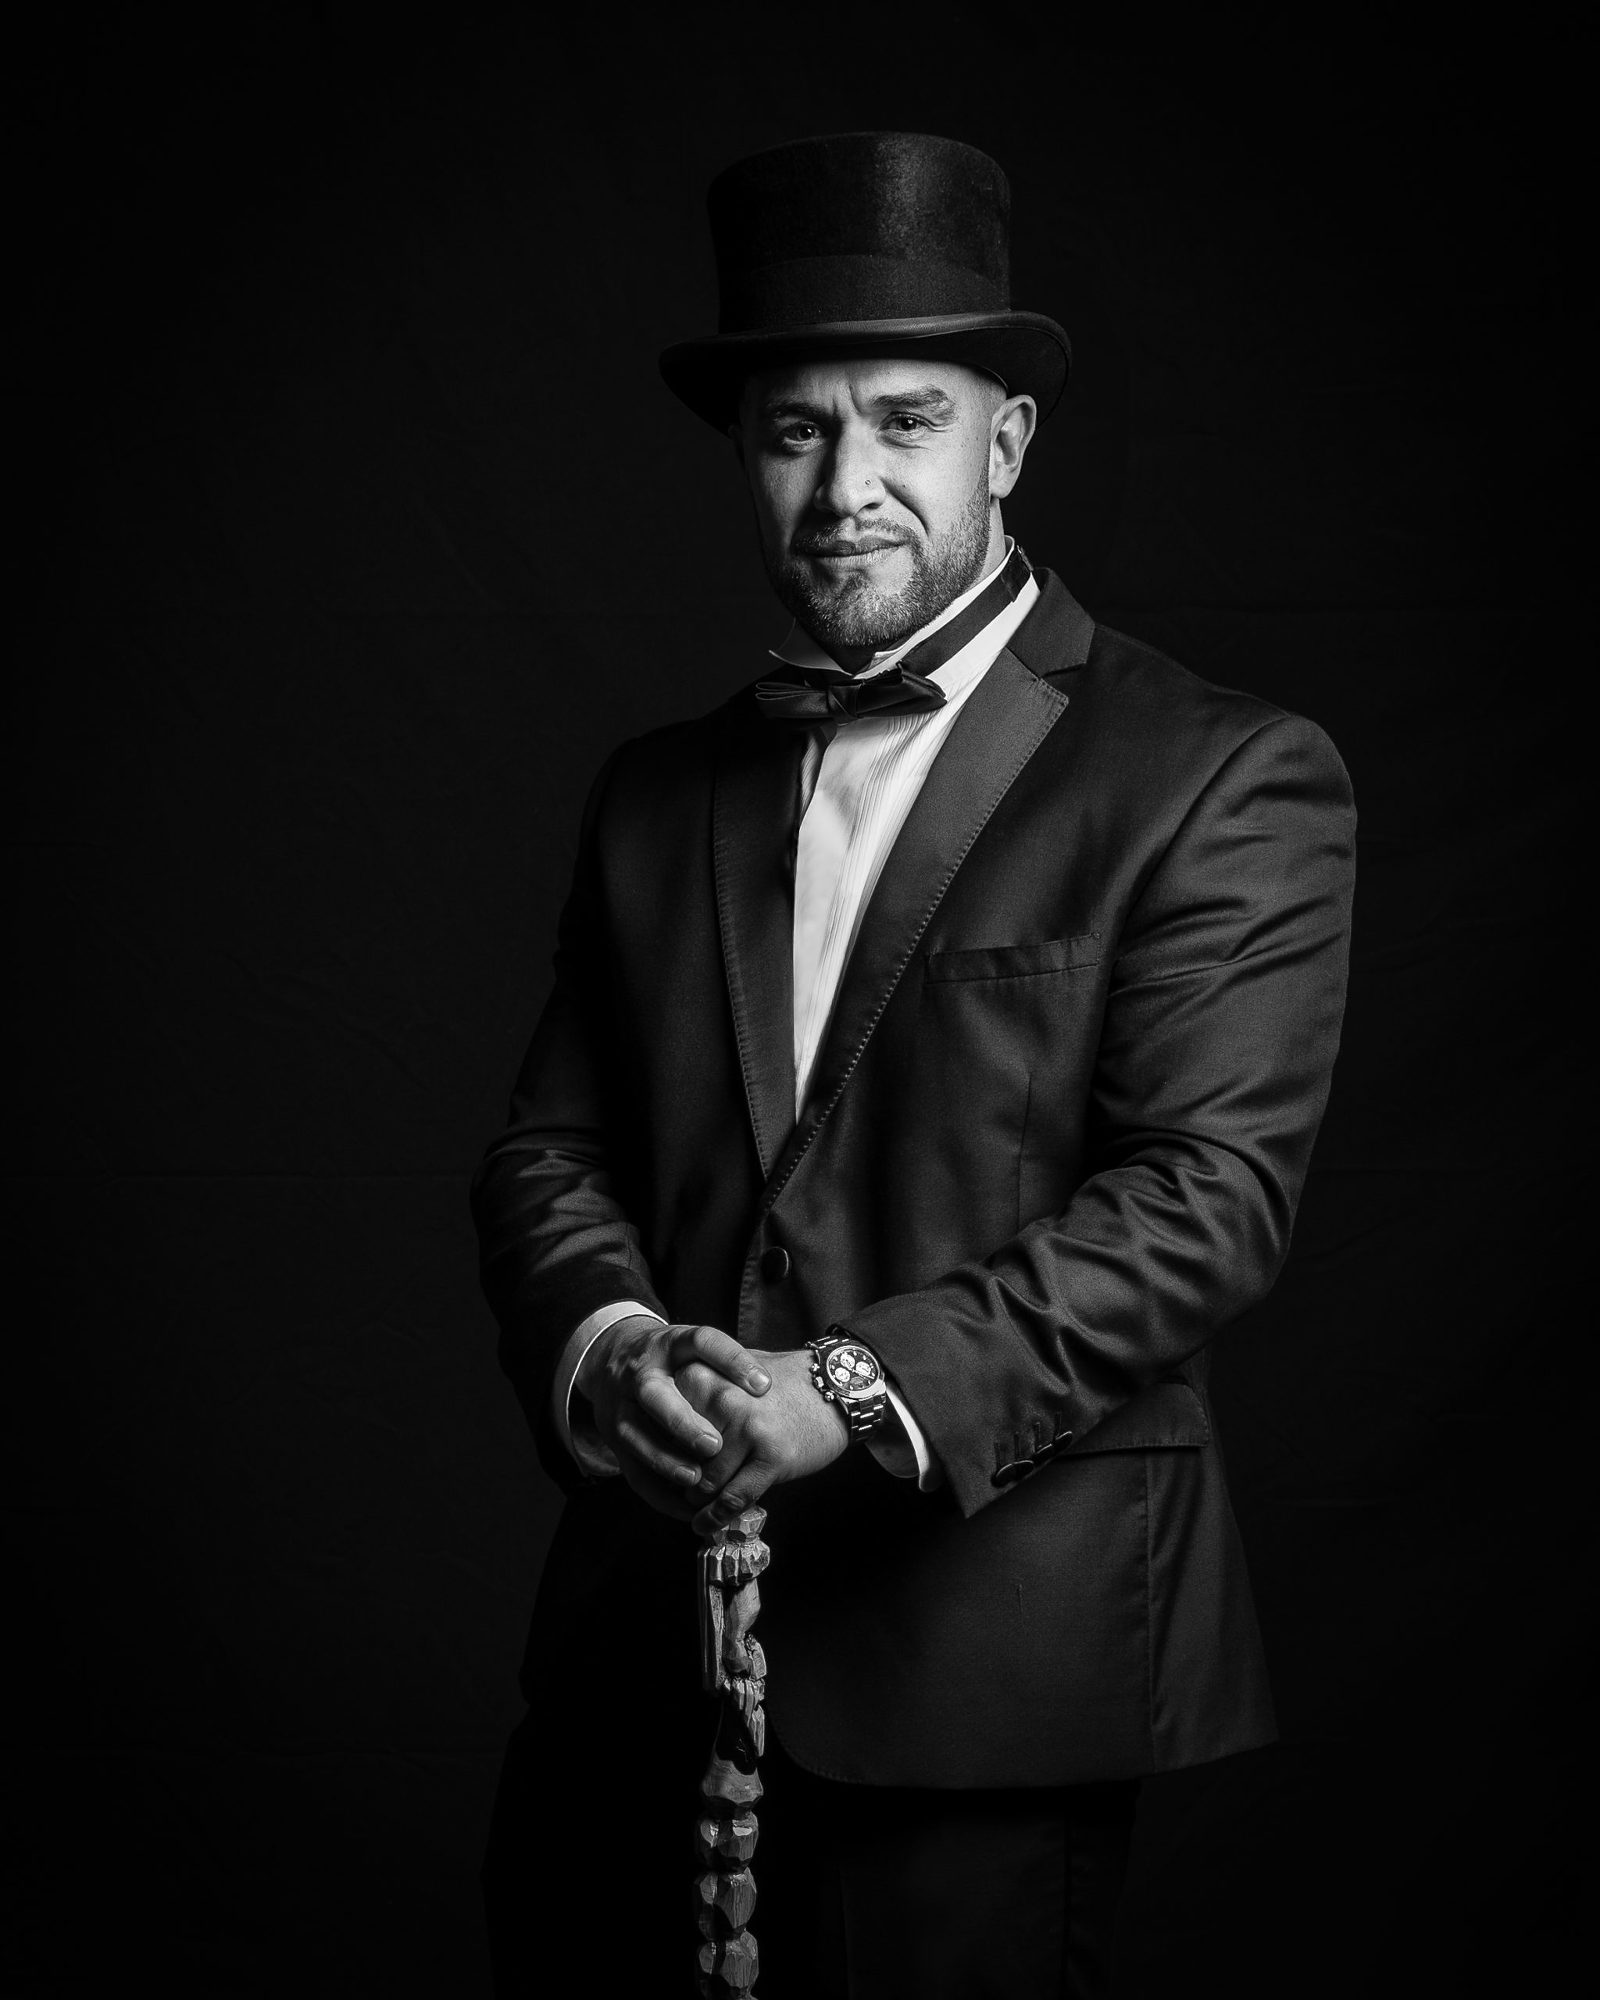 Elegantly dressed man with black tie, top hat and a cane